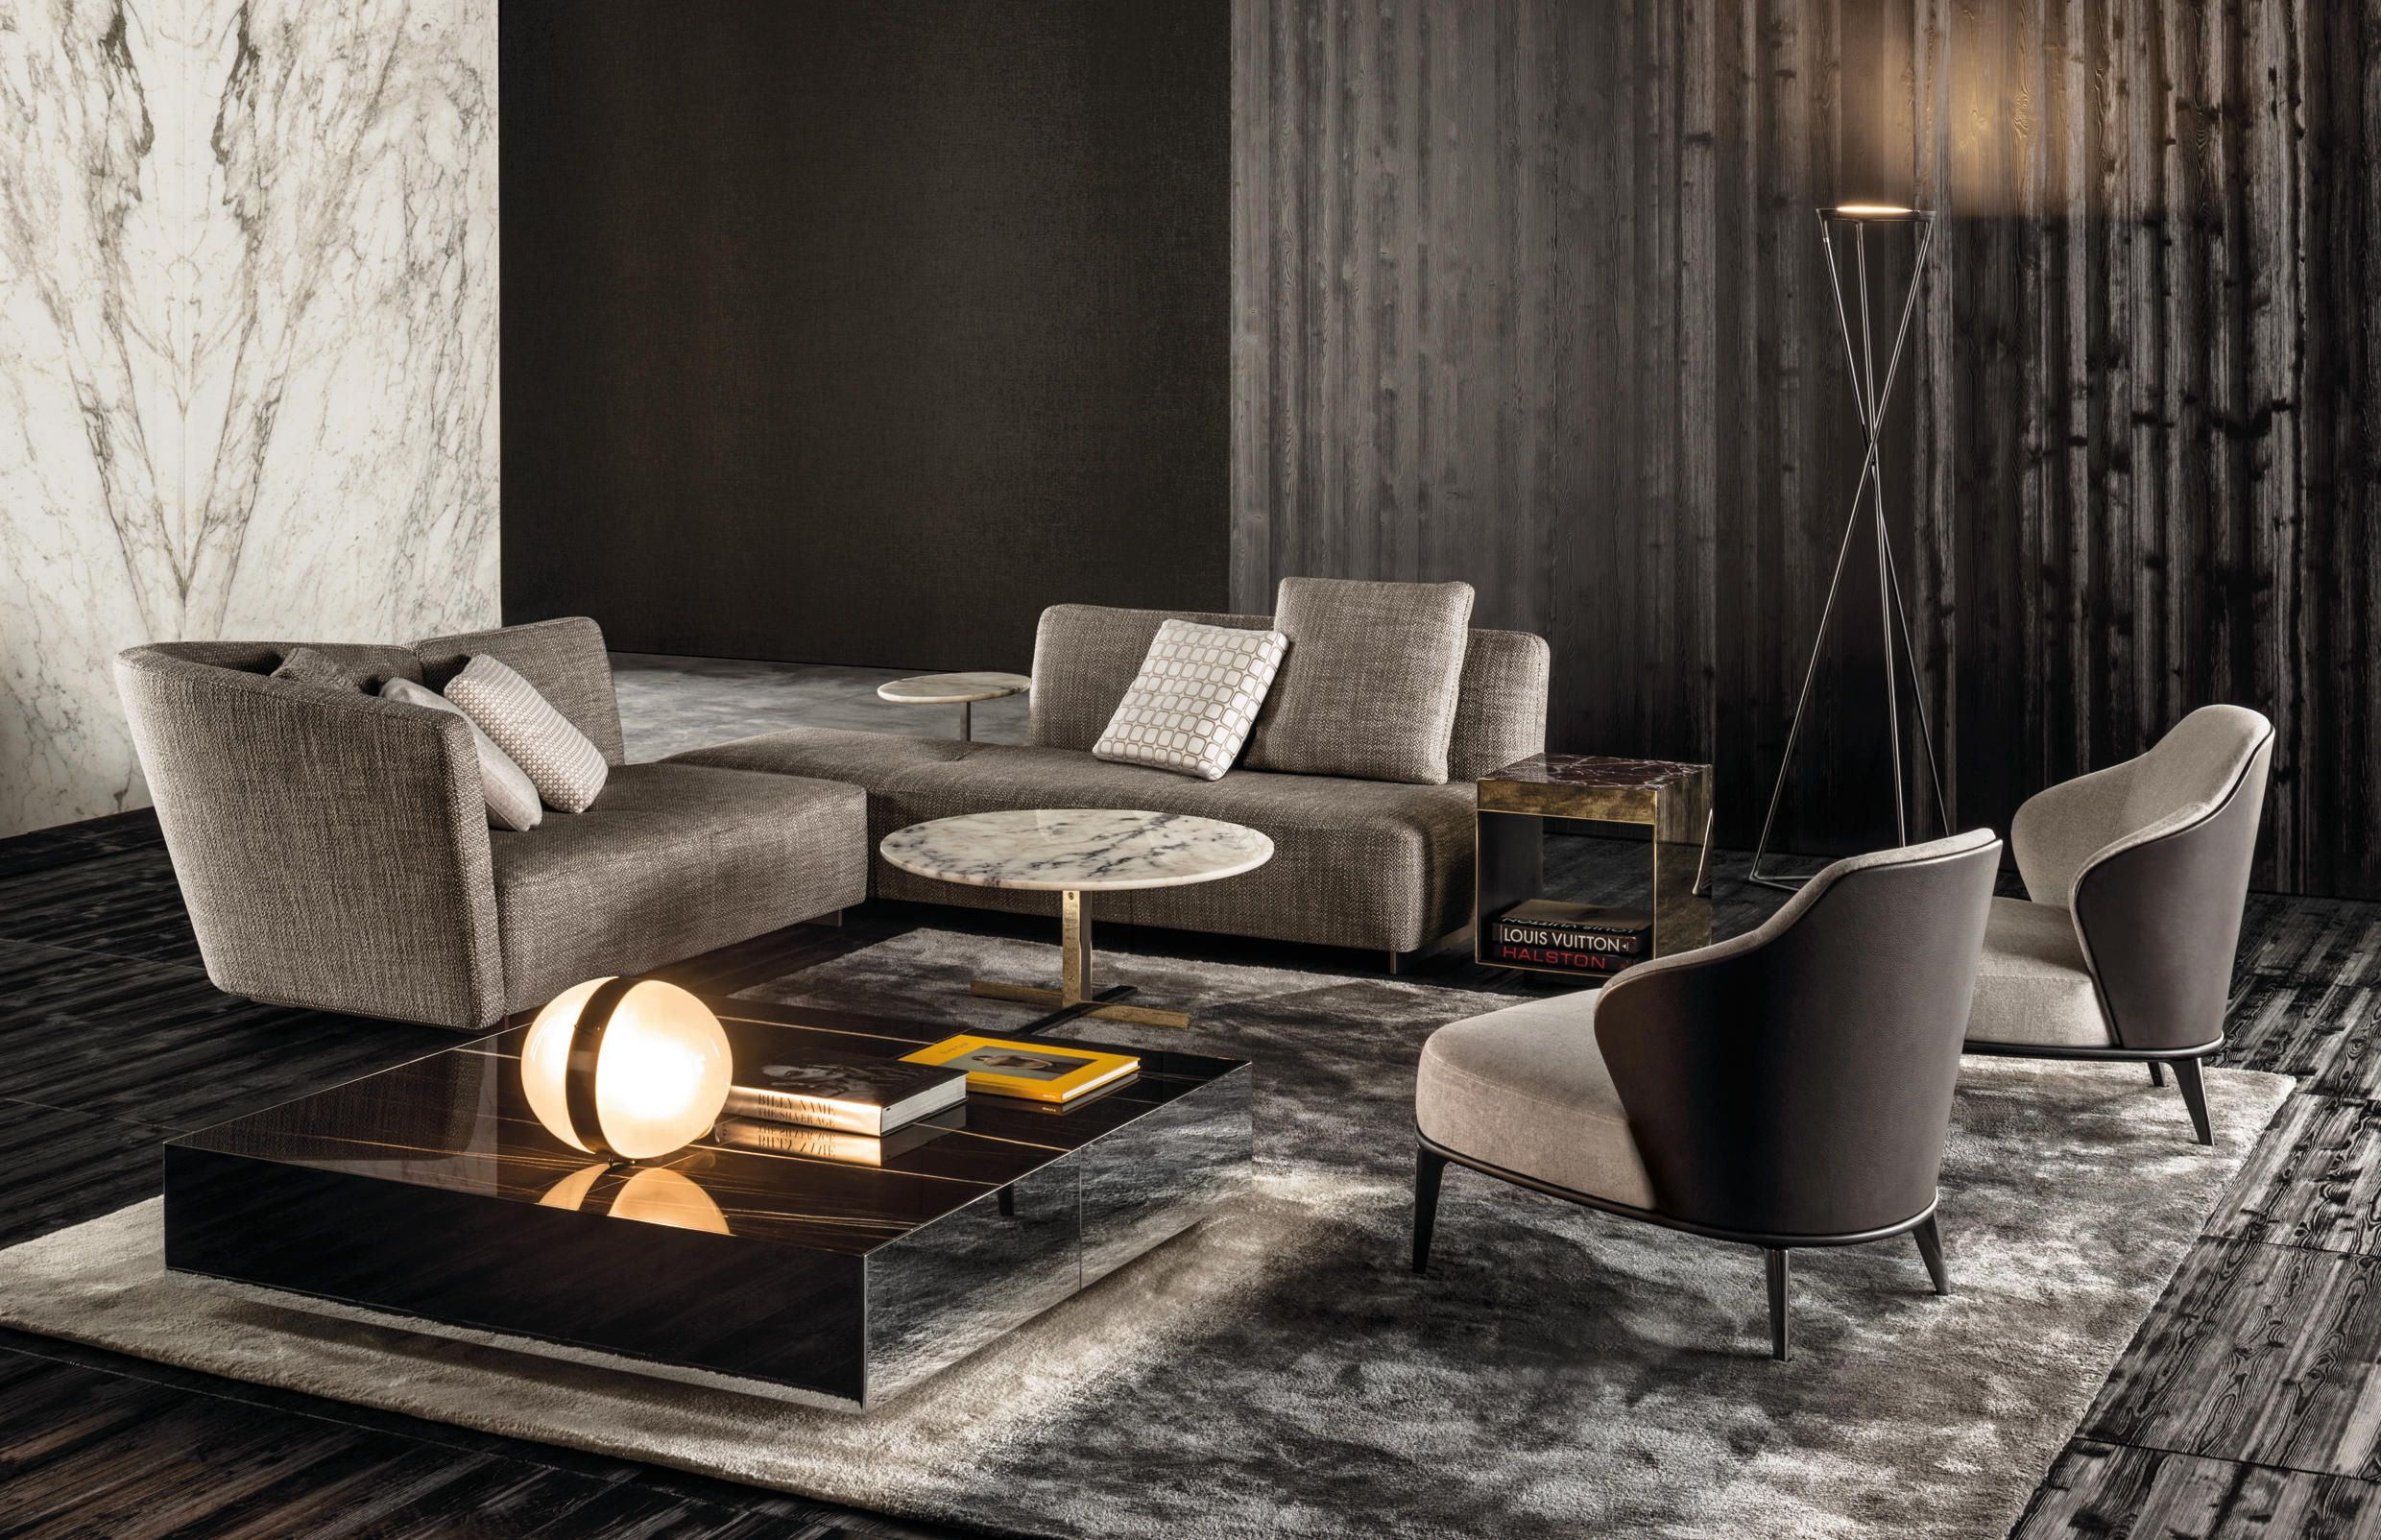 Lounge Seymour by Minotti 沙发 Pinterest